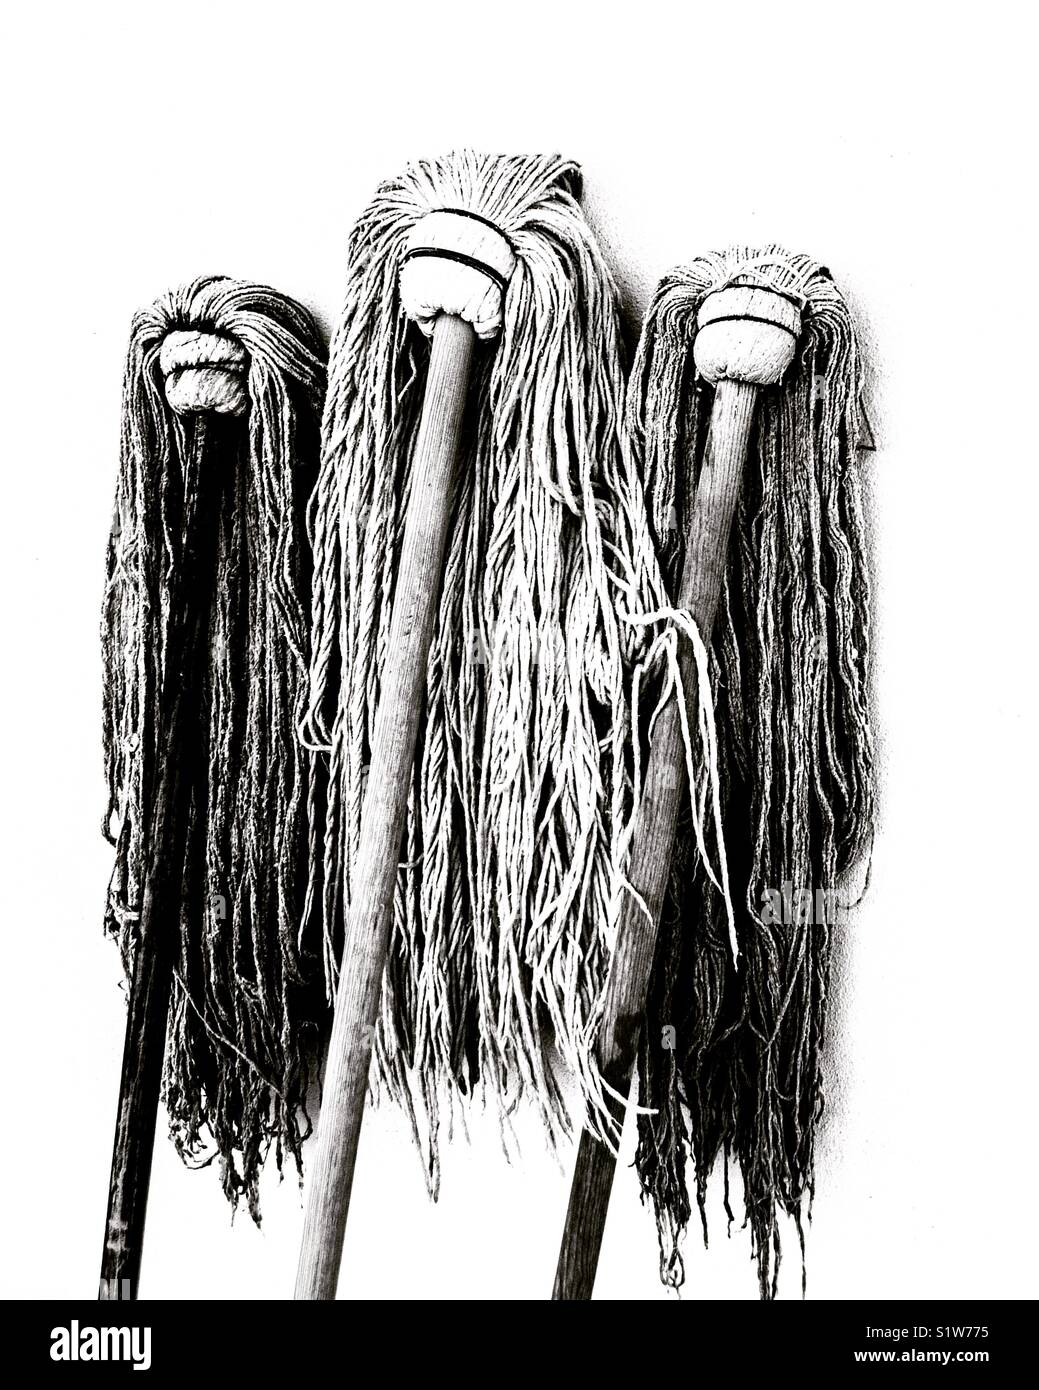 Three mops leaning against a wall. - Stock Image